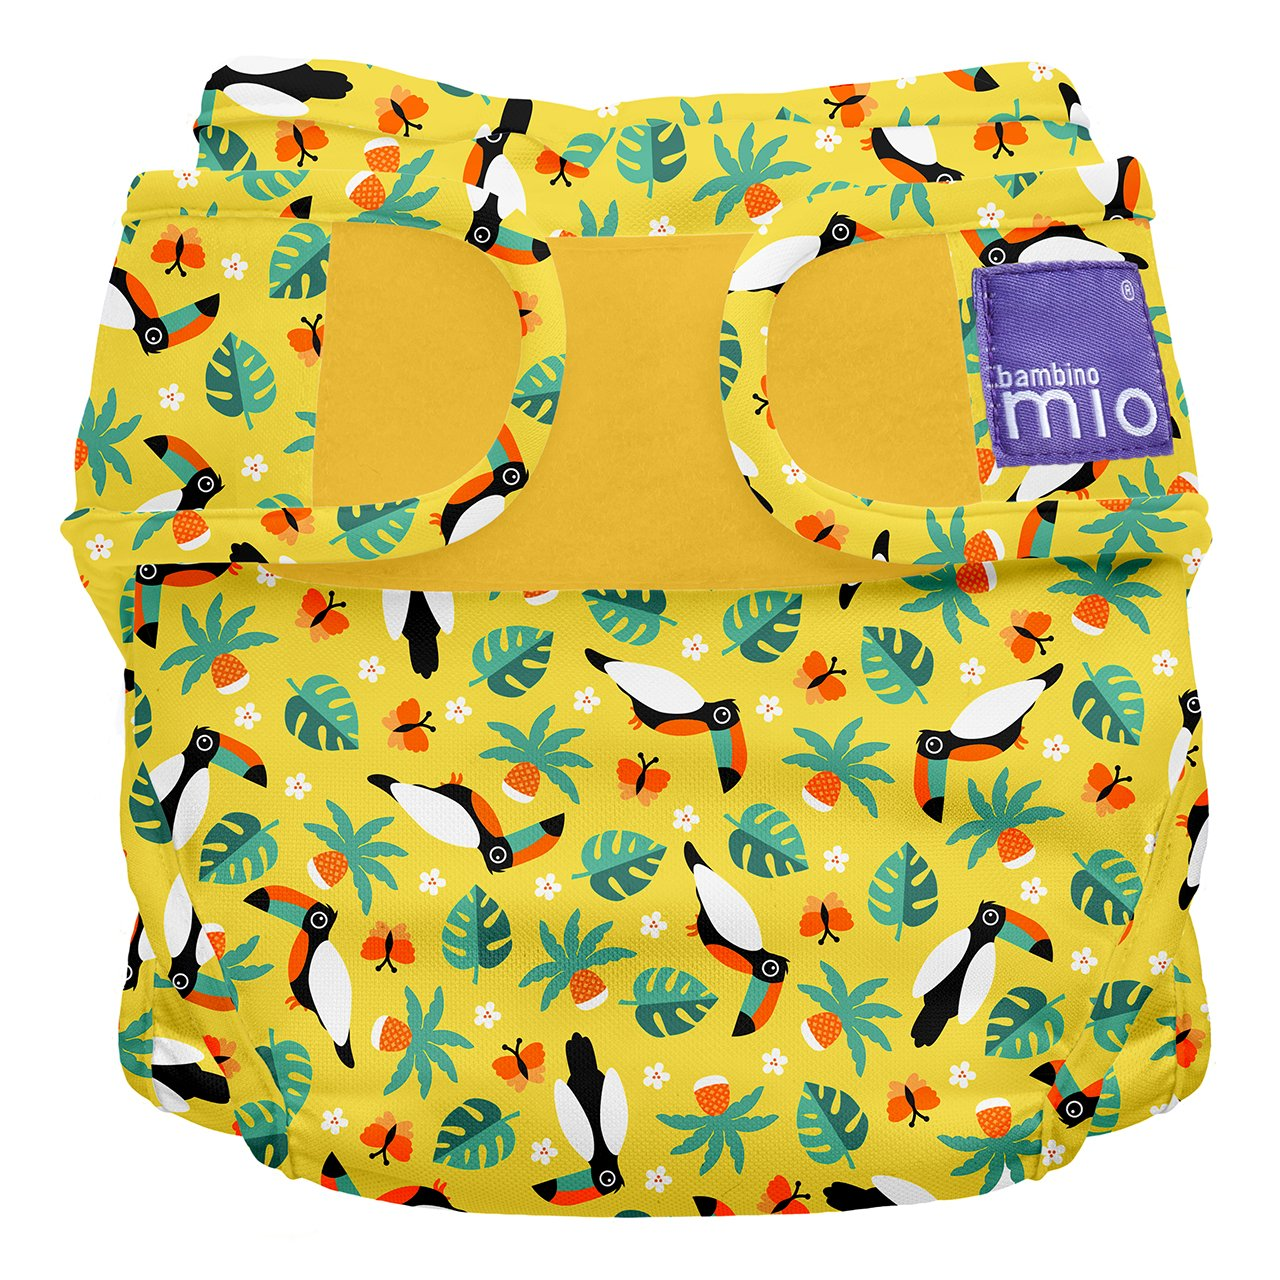 Bambino Mio Miosoft Nappy Cover, Size 1, Less Than 9 kg, Spider Monkey Bambino Mio UK MS1 MON